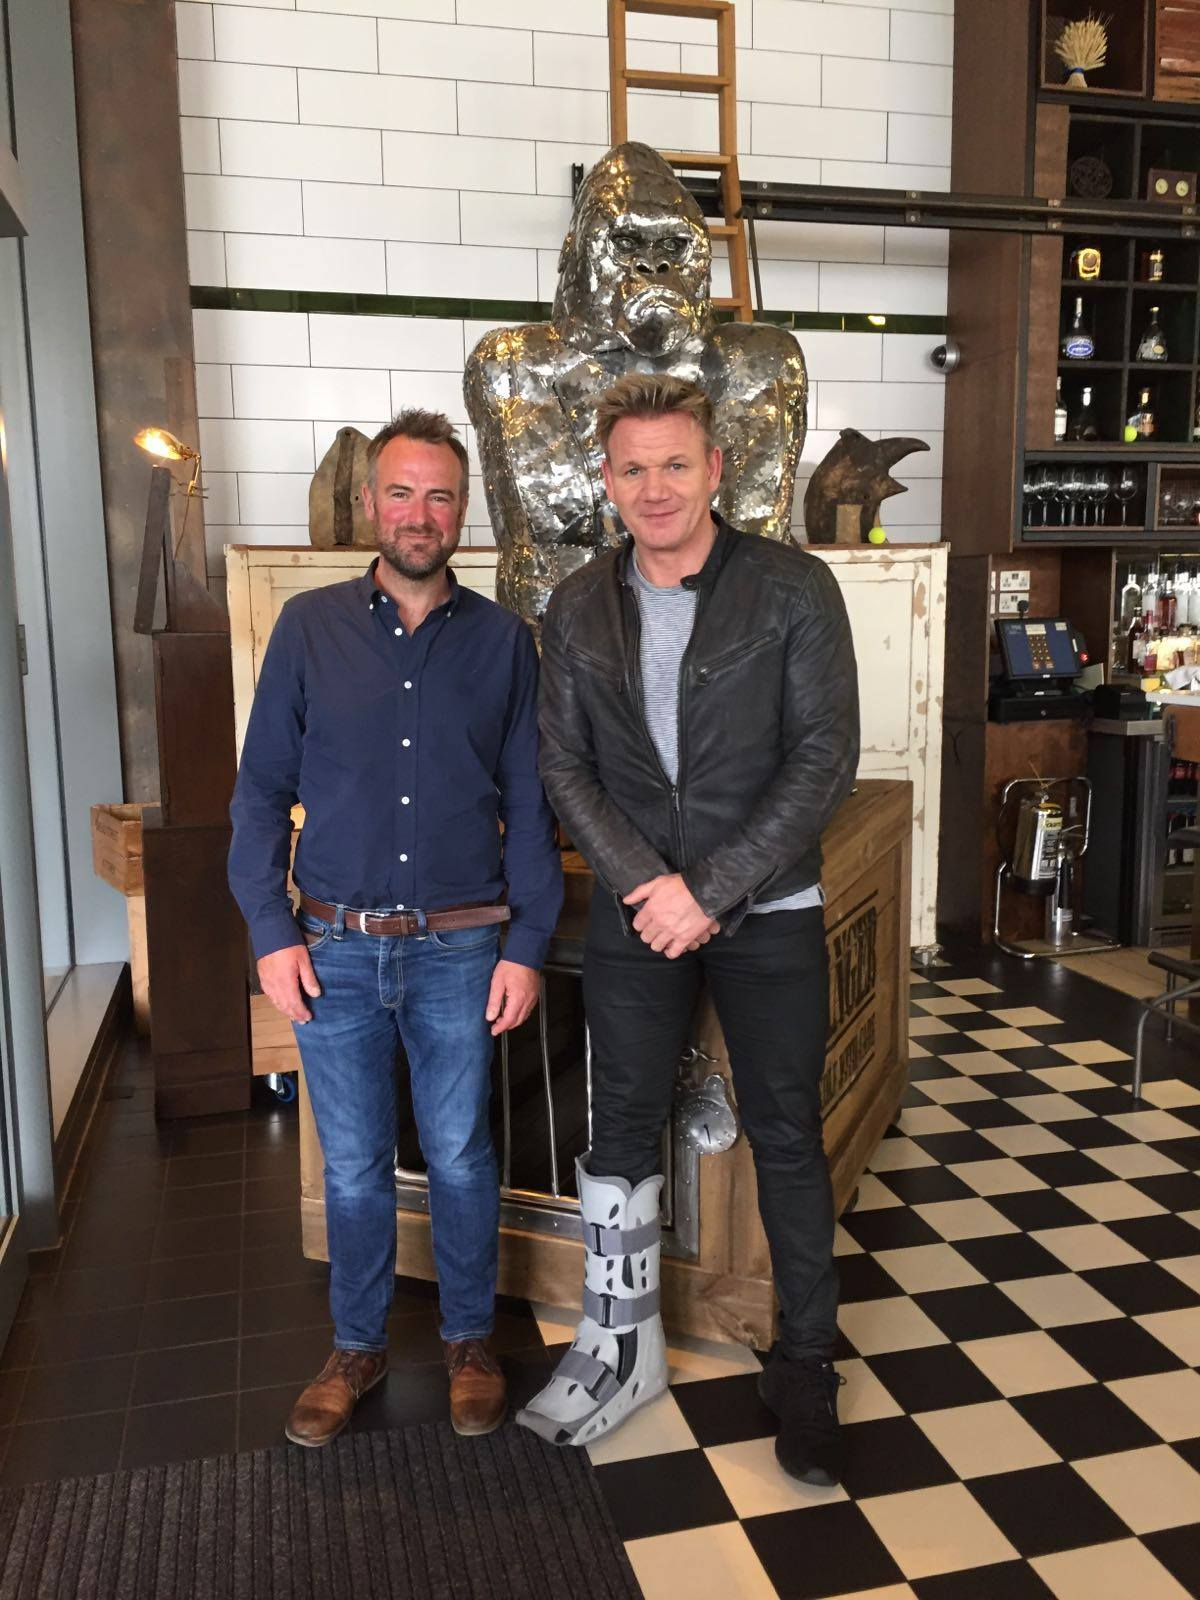 Grt to meet @GordonRamsay @breadstkitchen, Amazing food, top hospitality, so pleased to see Gorgon Solso's a hit! https://t.co/84oWqBOkzQ